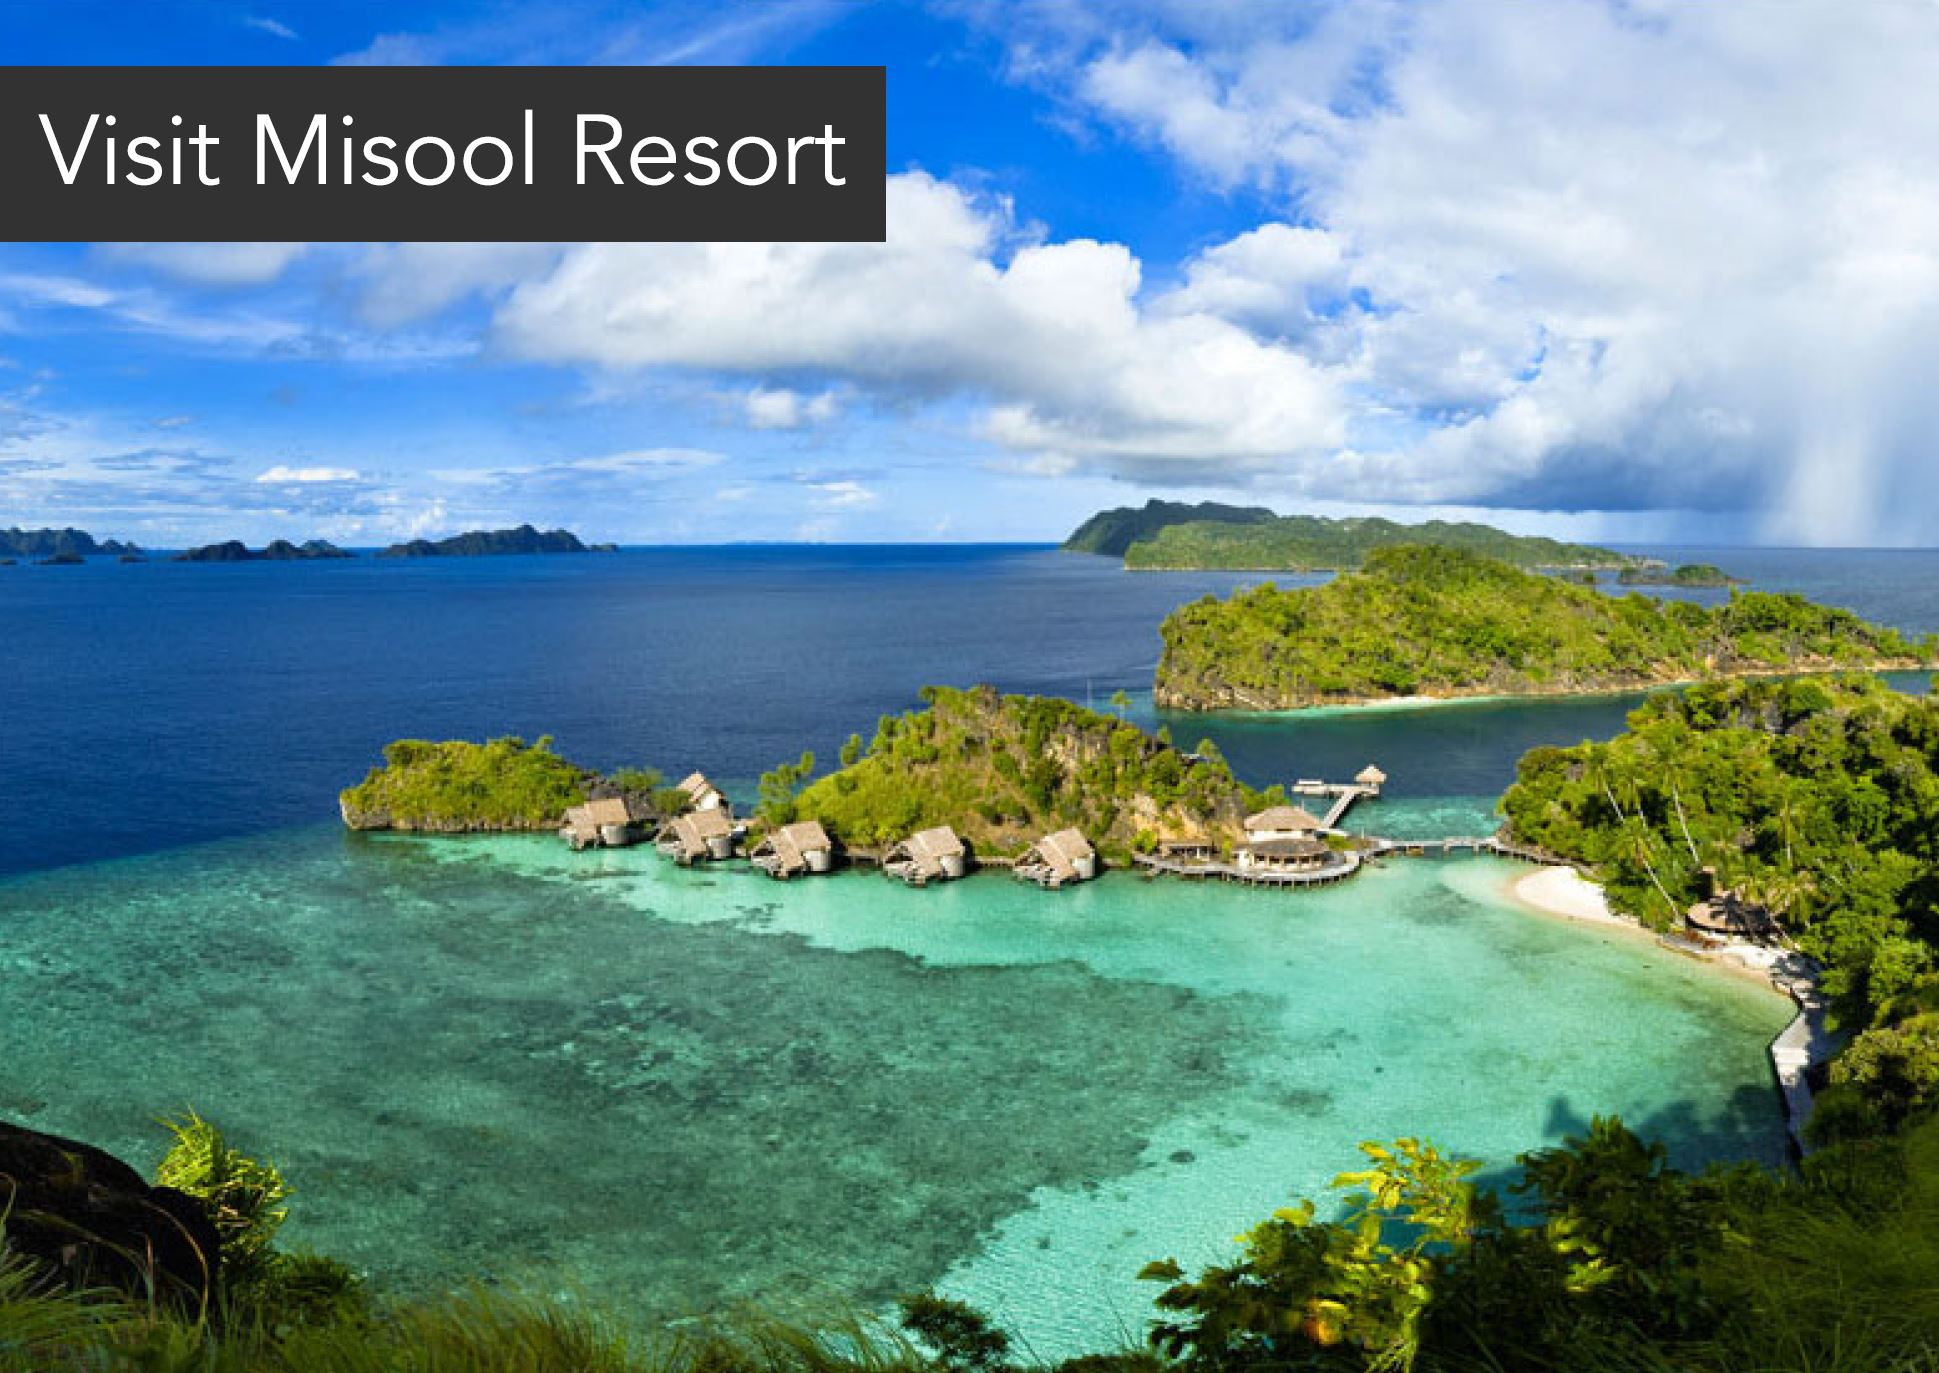 Visit Misool Resort in Raja Ampat - Come and experience the world's richest reefs in Raja Ampat. Just by visiting our sister resort, Misool, you are supporting valuable conservation projects.Misool donates 100 USD to Misool Foundation on behalf of each guest visiting the resort